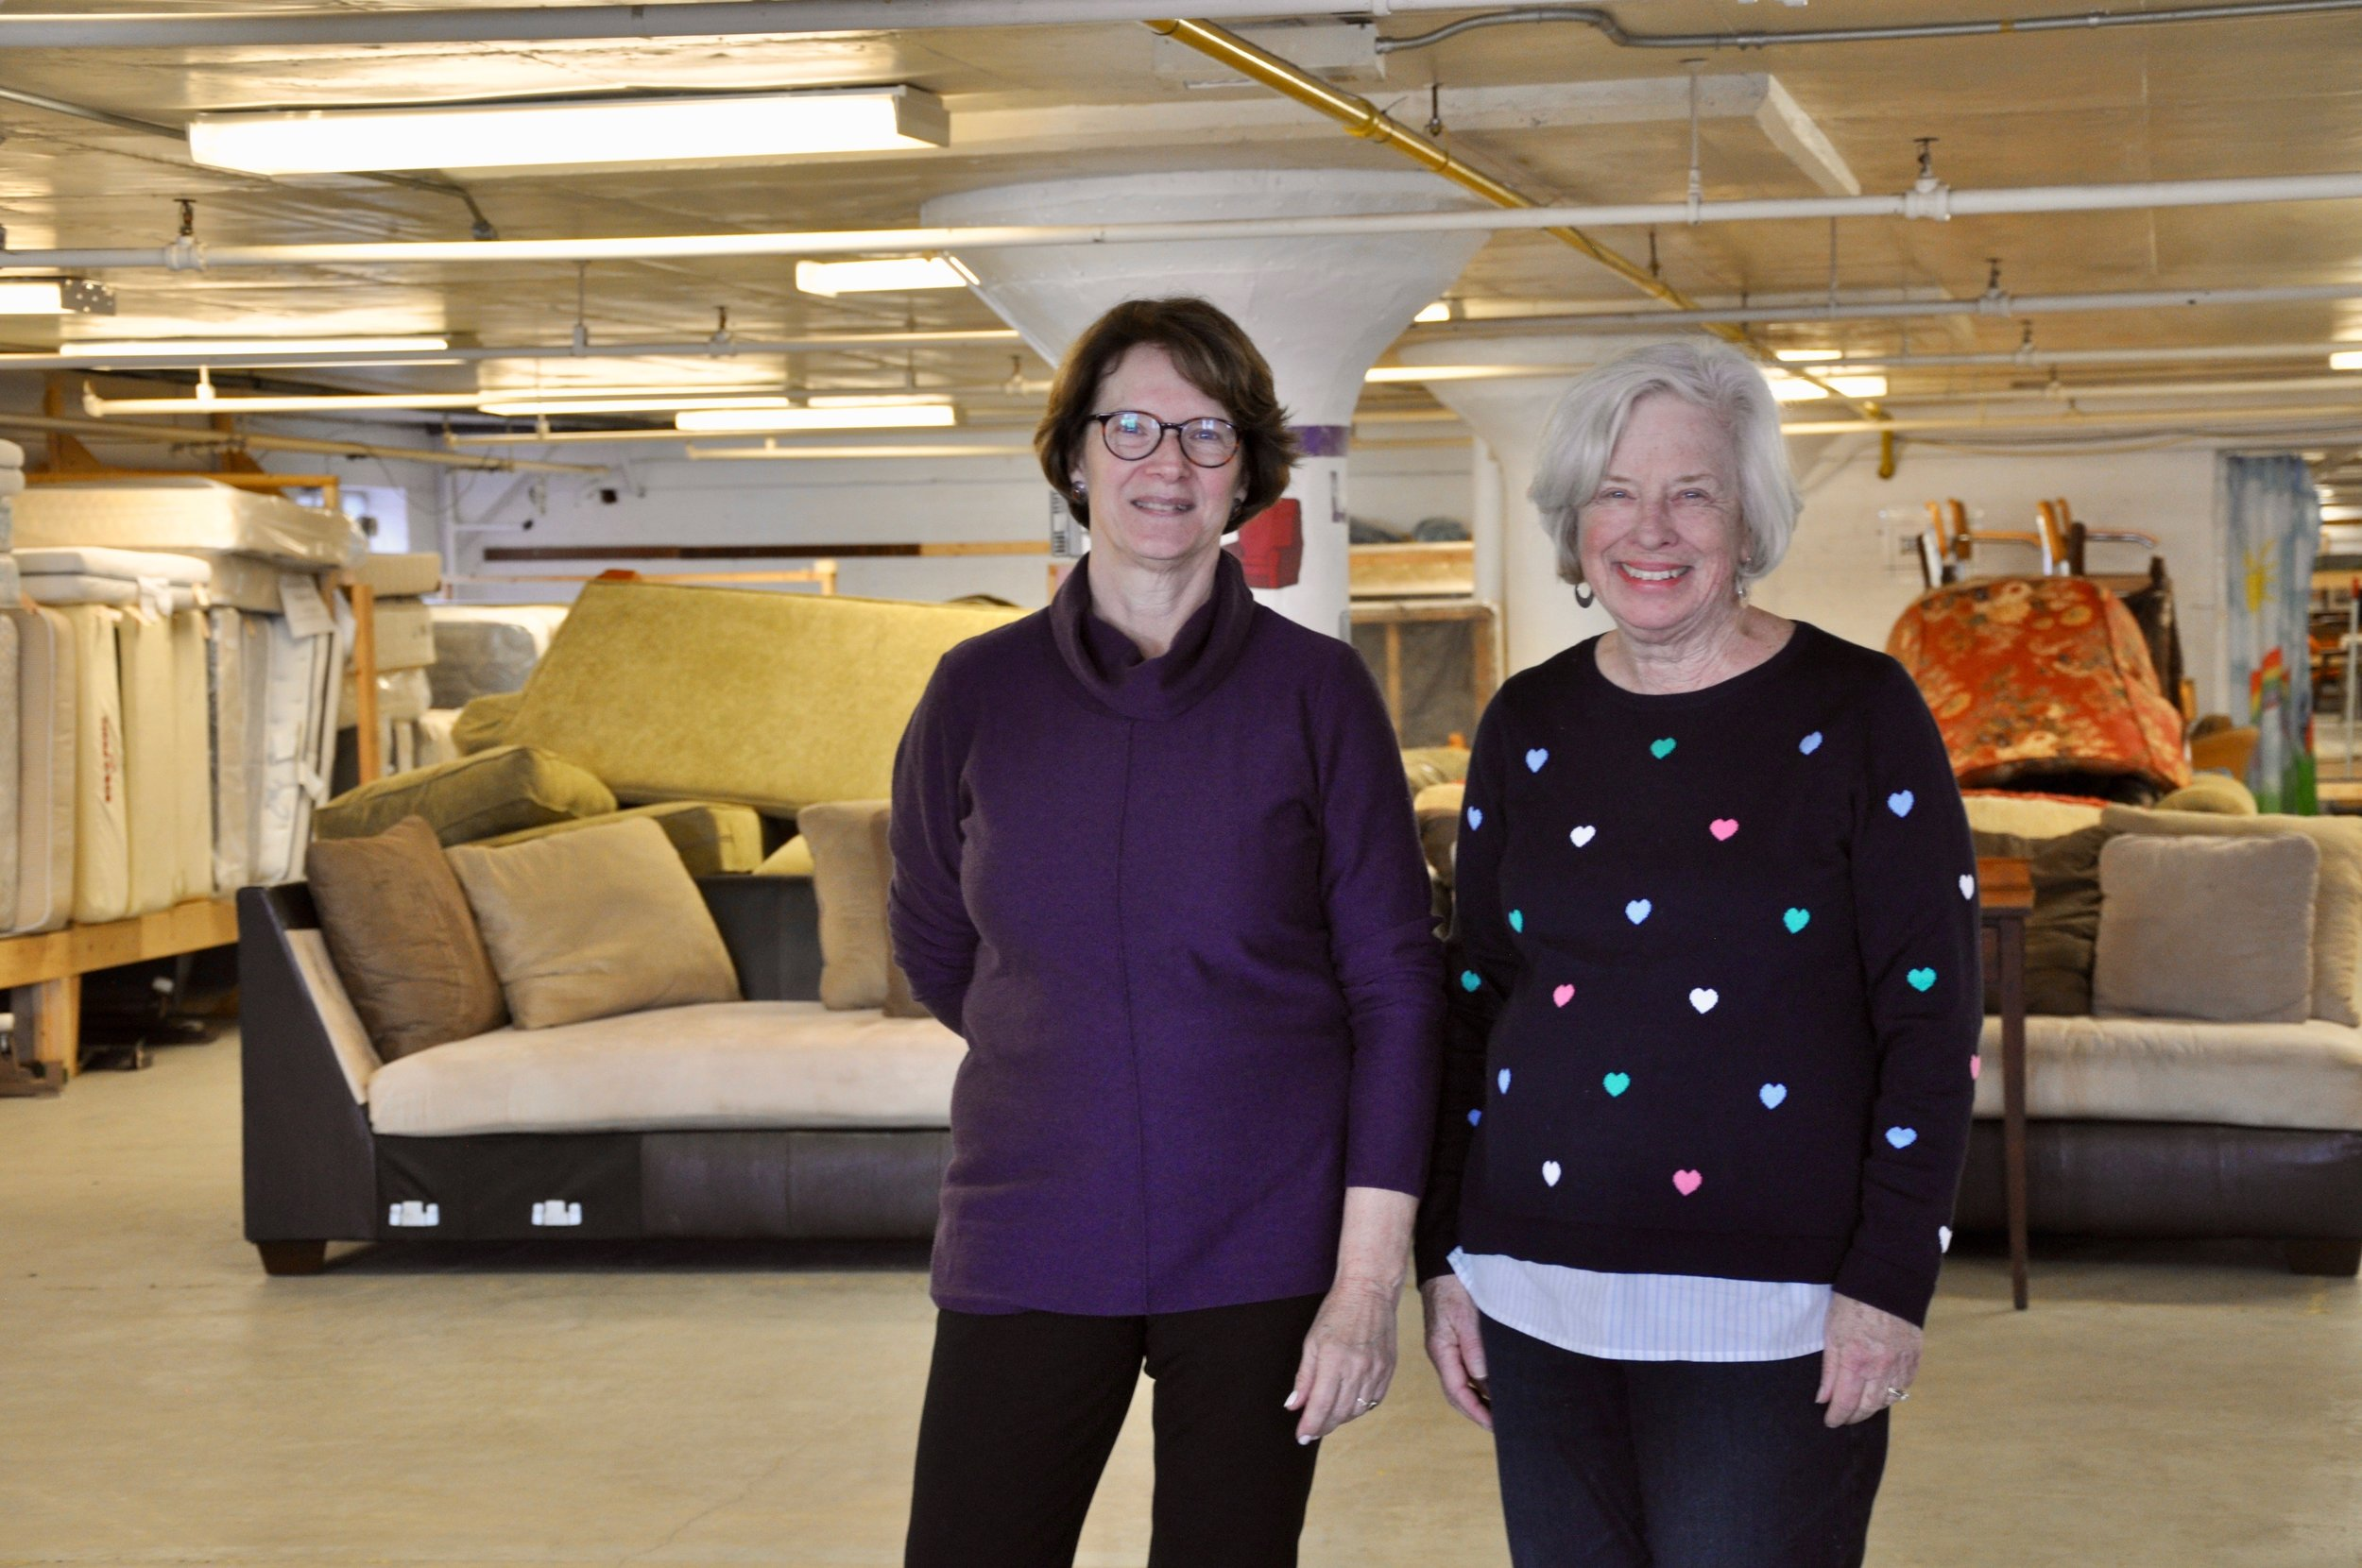 Volunteer Coordinator Laura Stanton and Founding Member Barbara Yates stand committed to helping families recover from homelessness, breaking down stereotypes and giving clients a warm, respectful experience at New Life's distribution center.